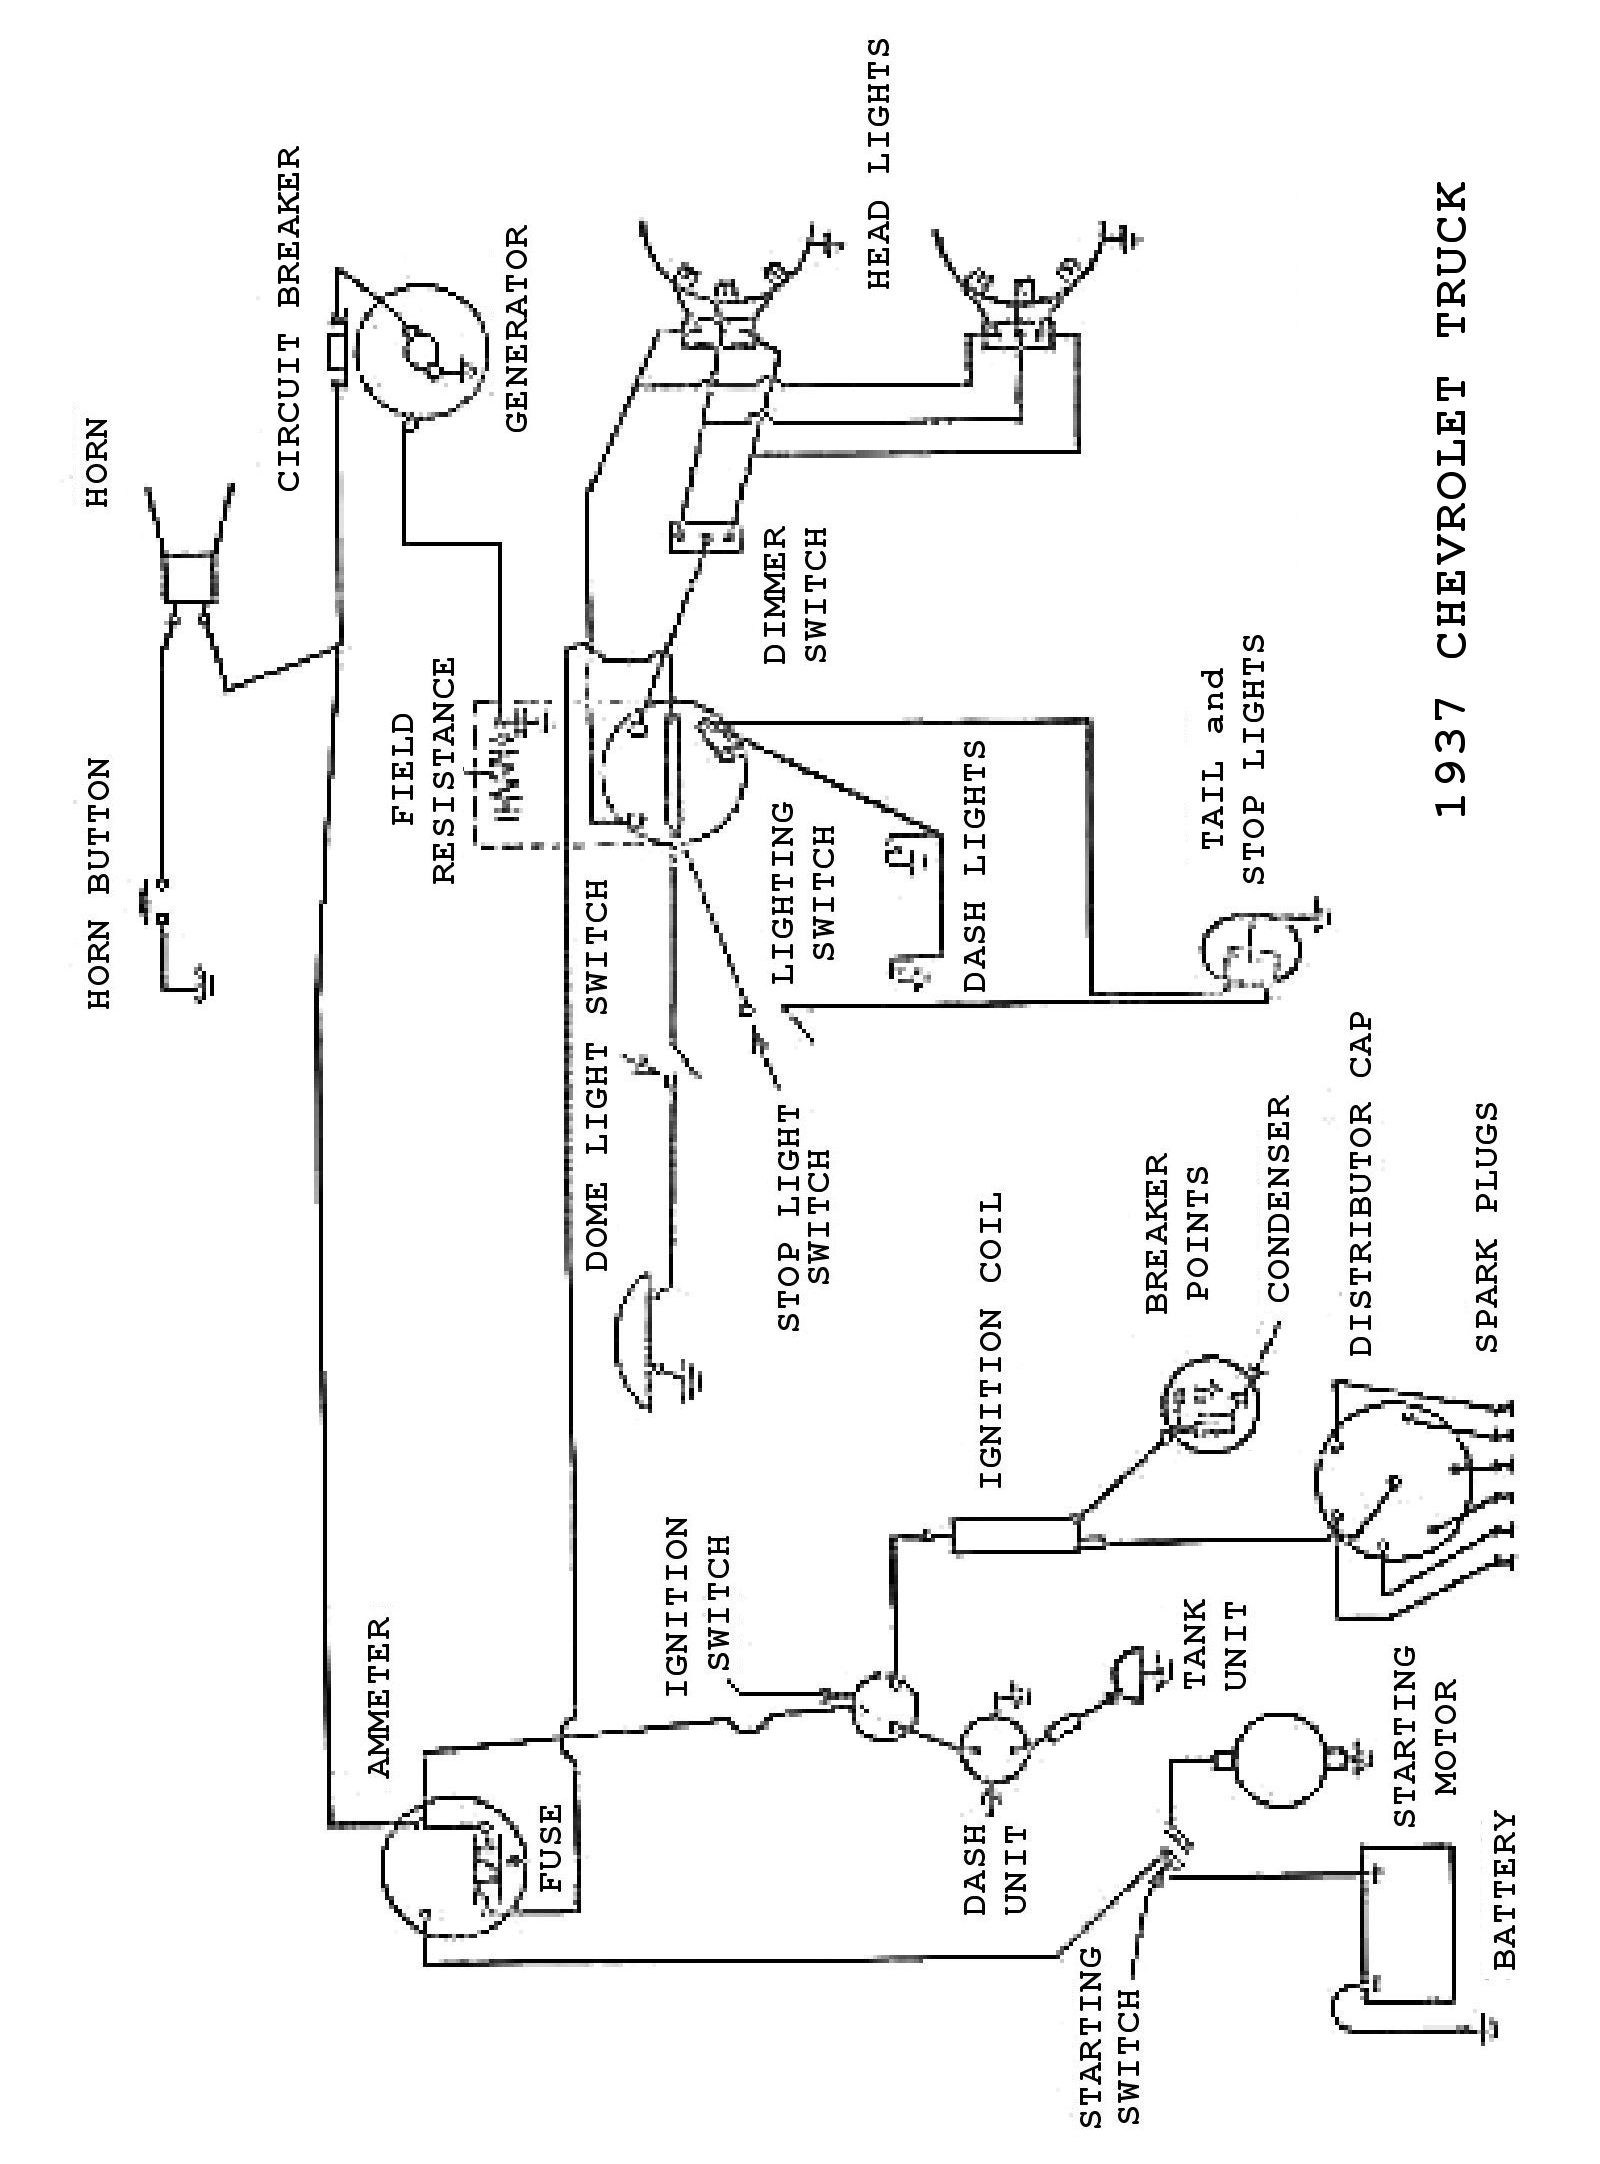 1937 Chevy Wiring Harness Bookmark About Diagram For Nova Data Rh 16 9 1 Mercedes Aktion Tesmer De Painless